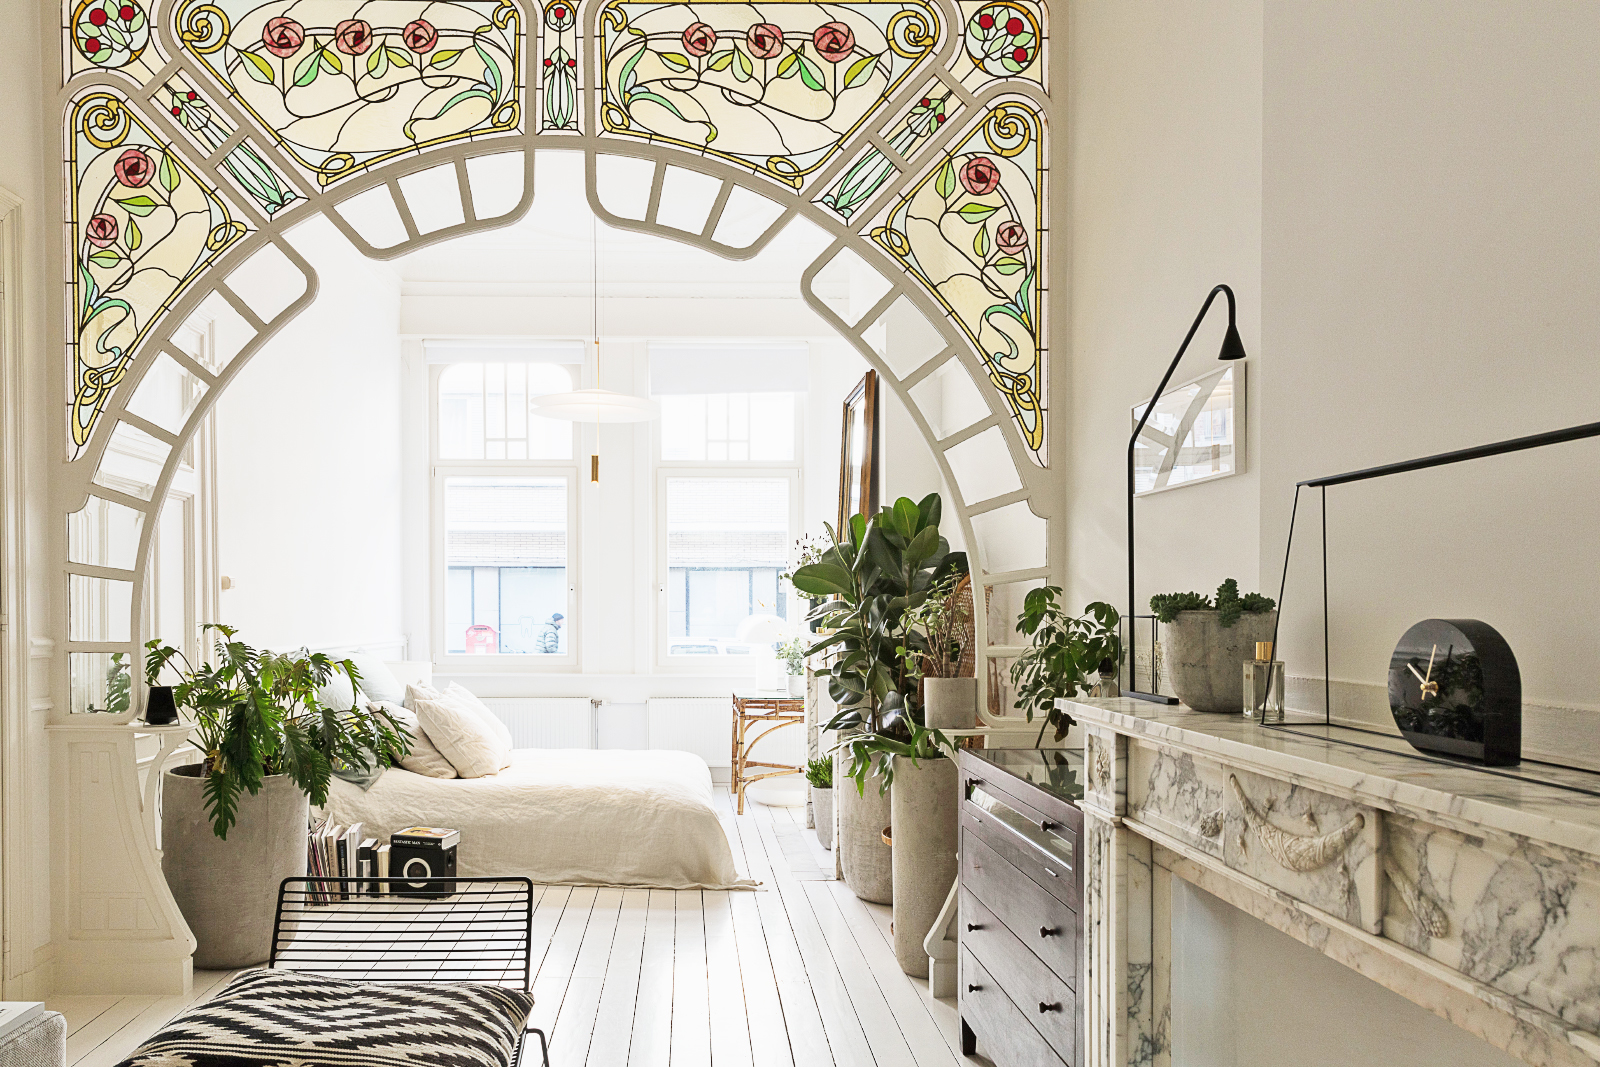 House Tour. A Nouveau Bohemian Apartment All In White